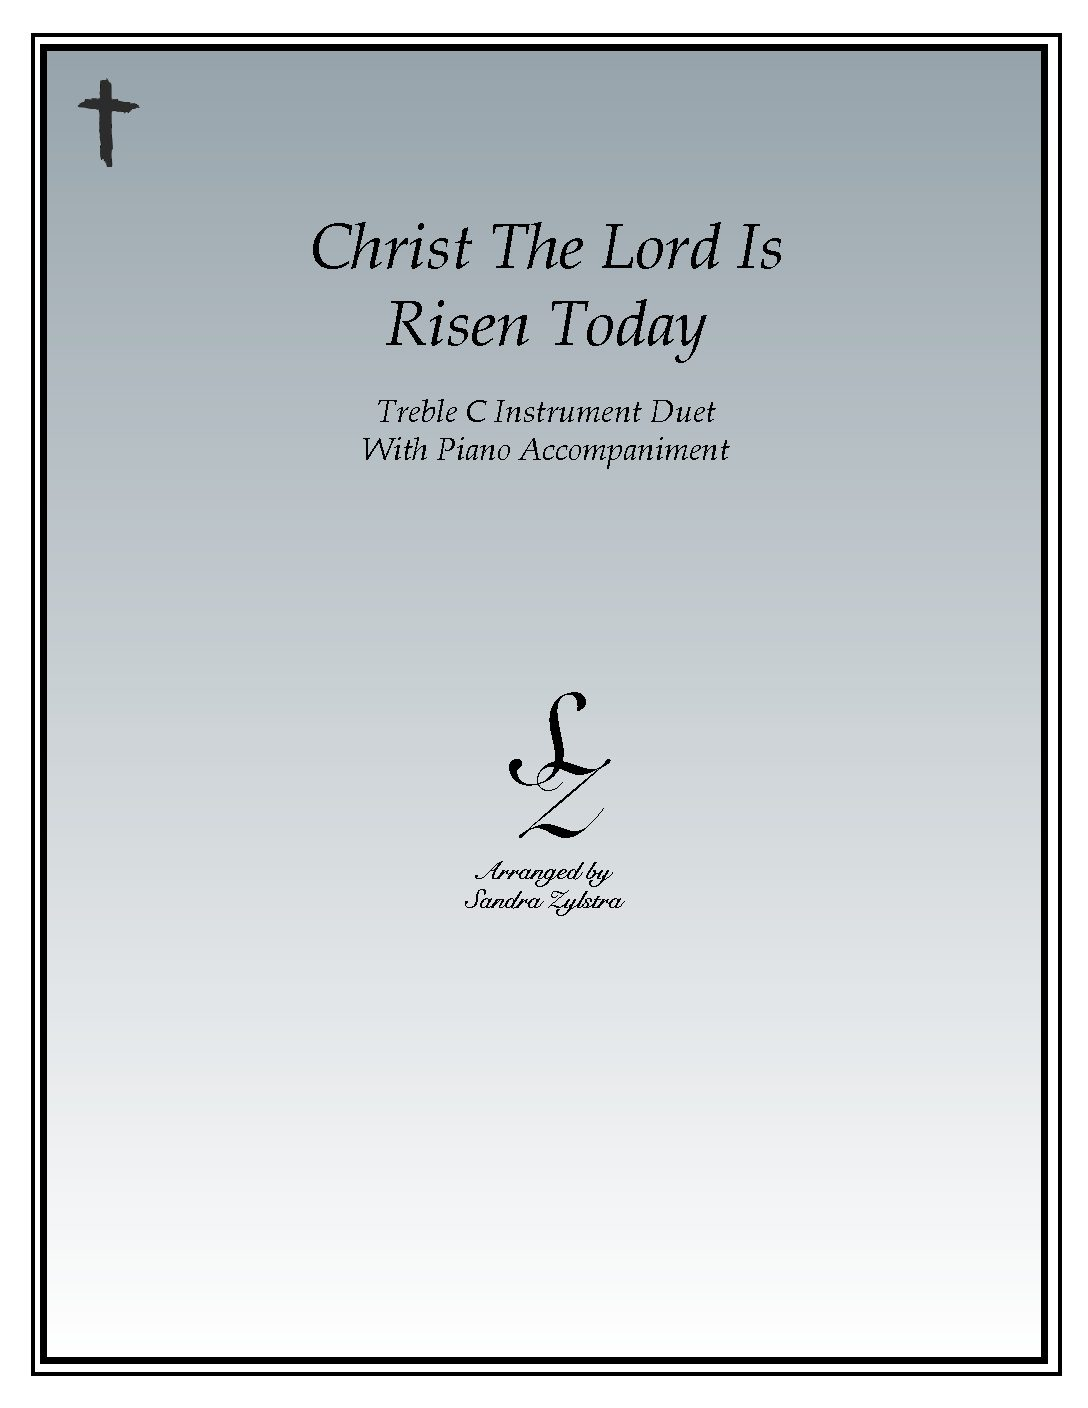 Christ The Lord Is Risen Today – Instrument Duet & Piano Accompaniment